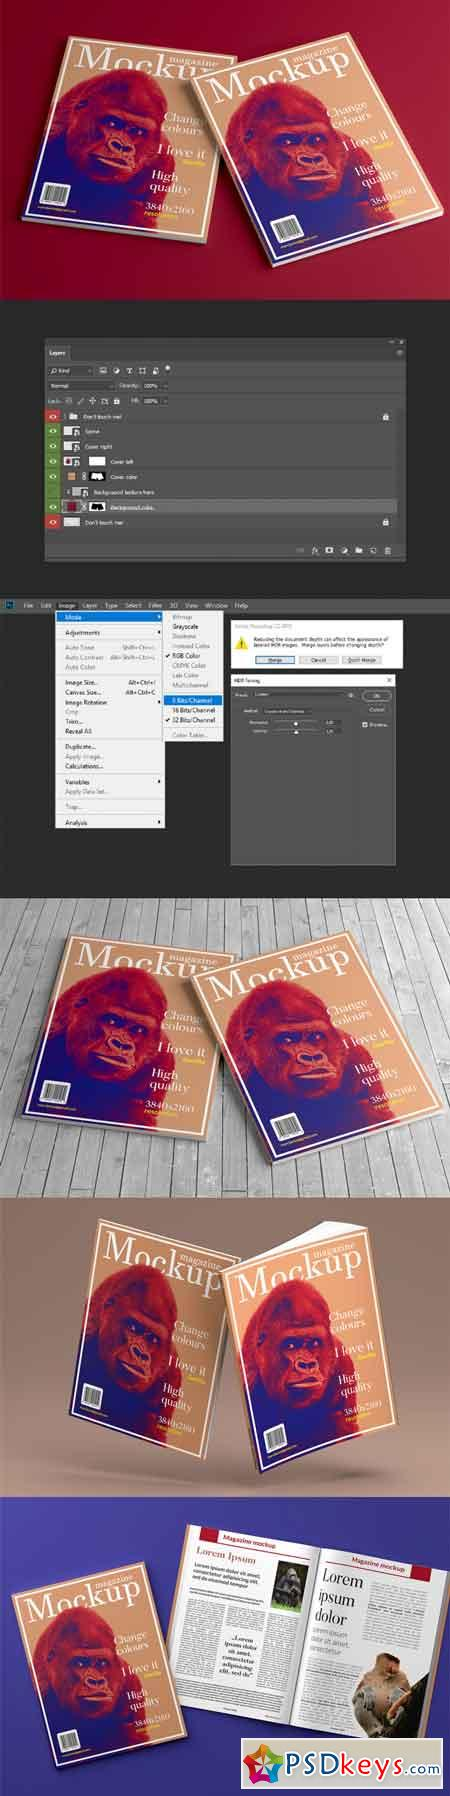 Magazine mockup (3 different shots) 3501762